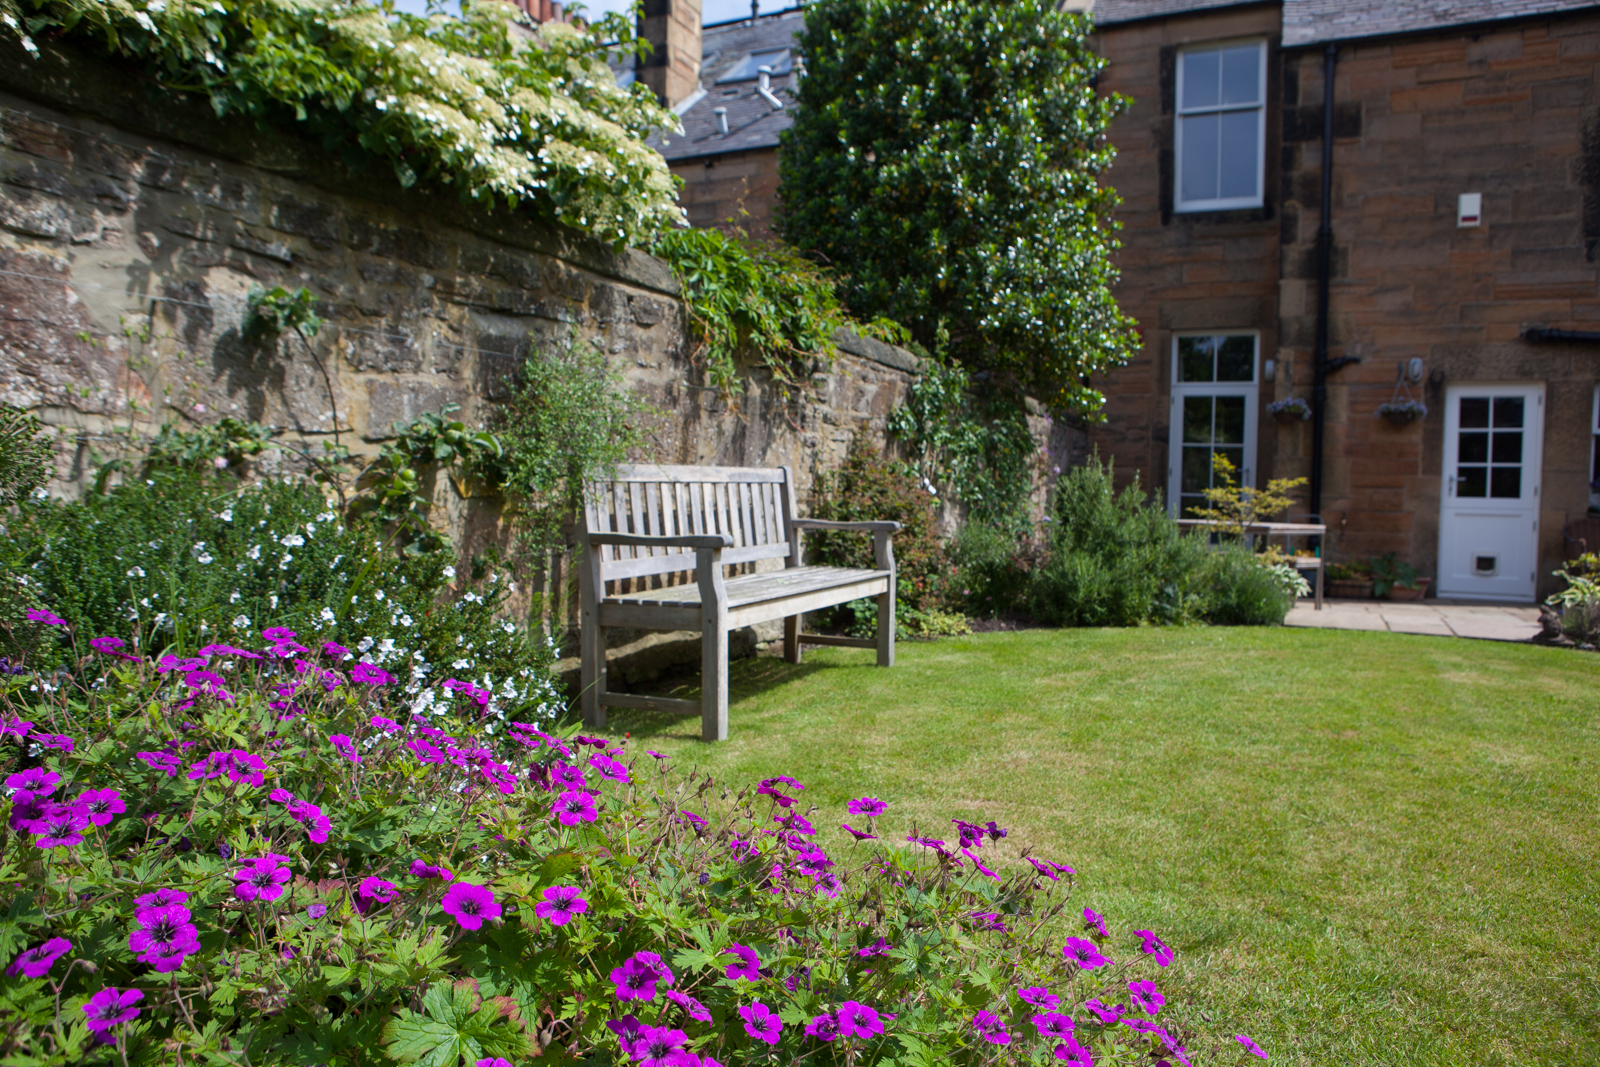 Geraniums and a sunny bench in an Edinburgh garden